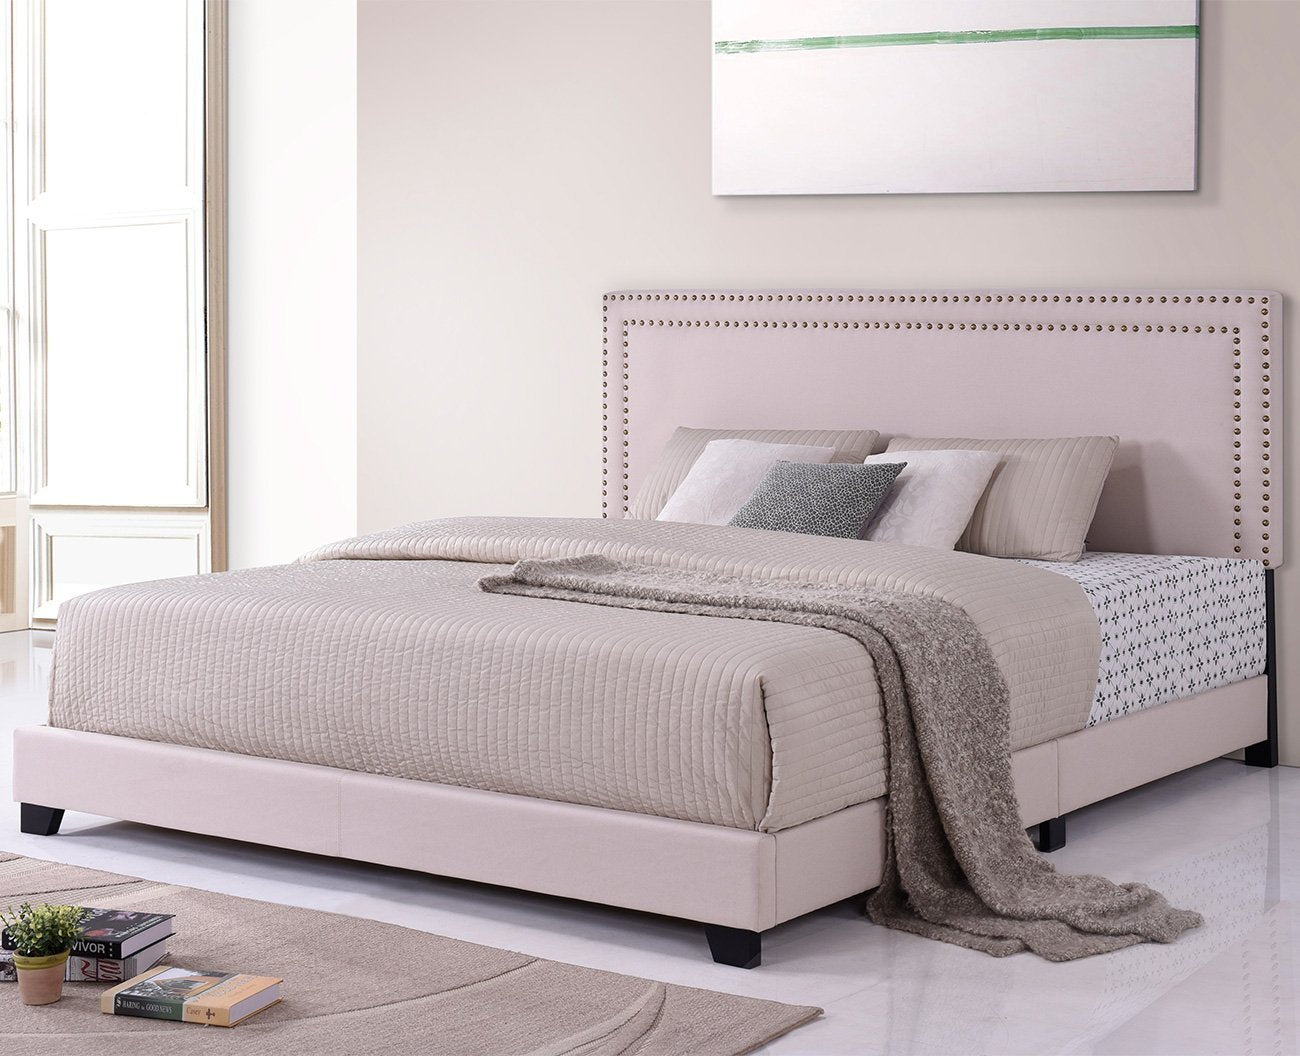 Camande Designs Milan Upholstered Platform Bed with Wooden Slats and Nailhead Detail (King)